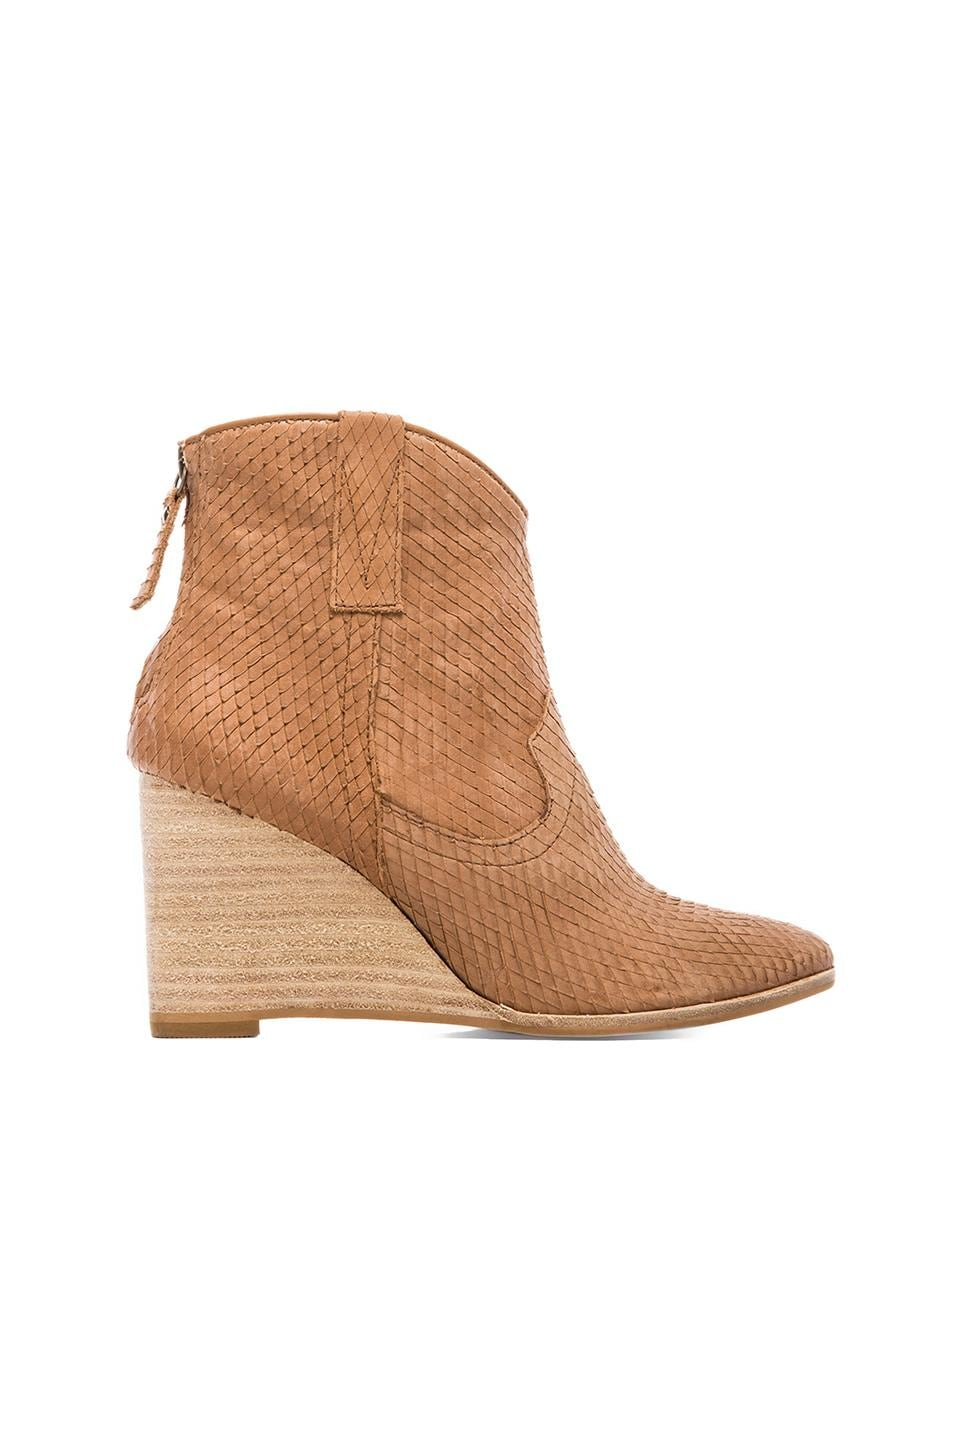 Matisse Liberation Bootie in Natural